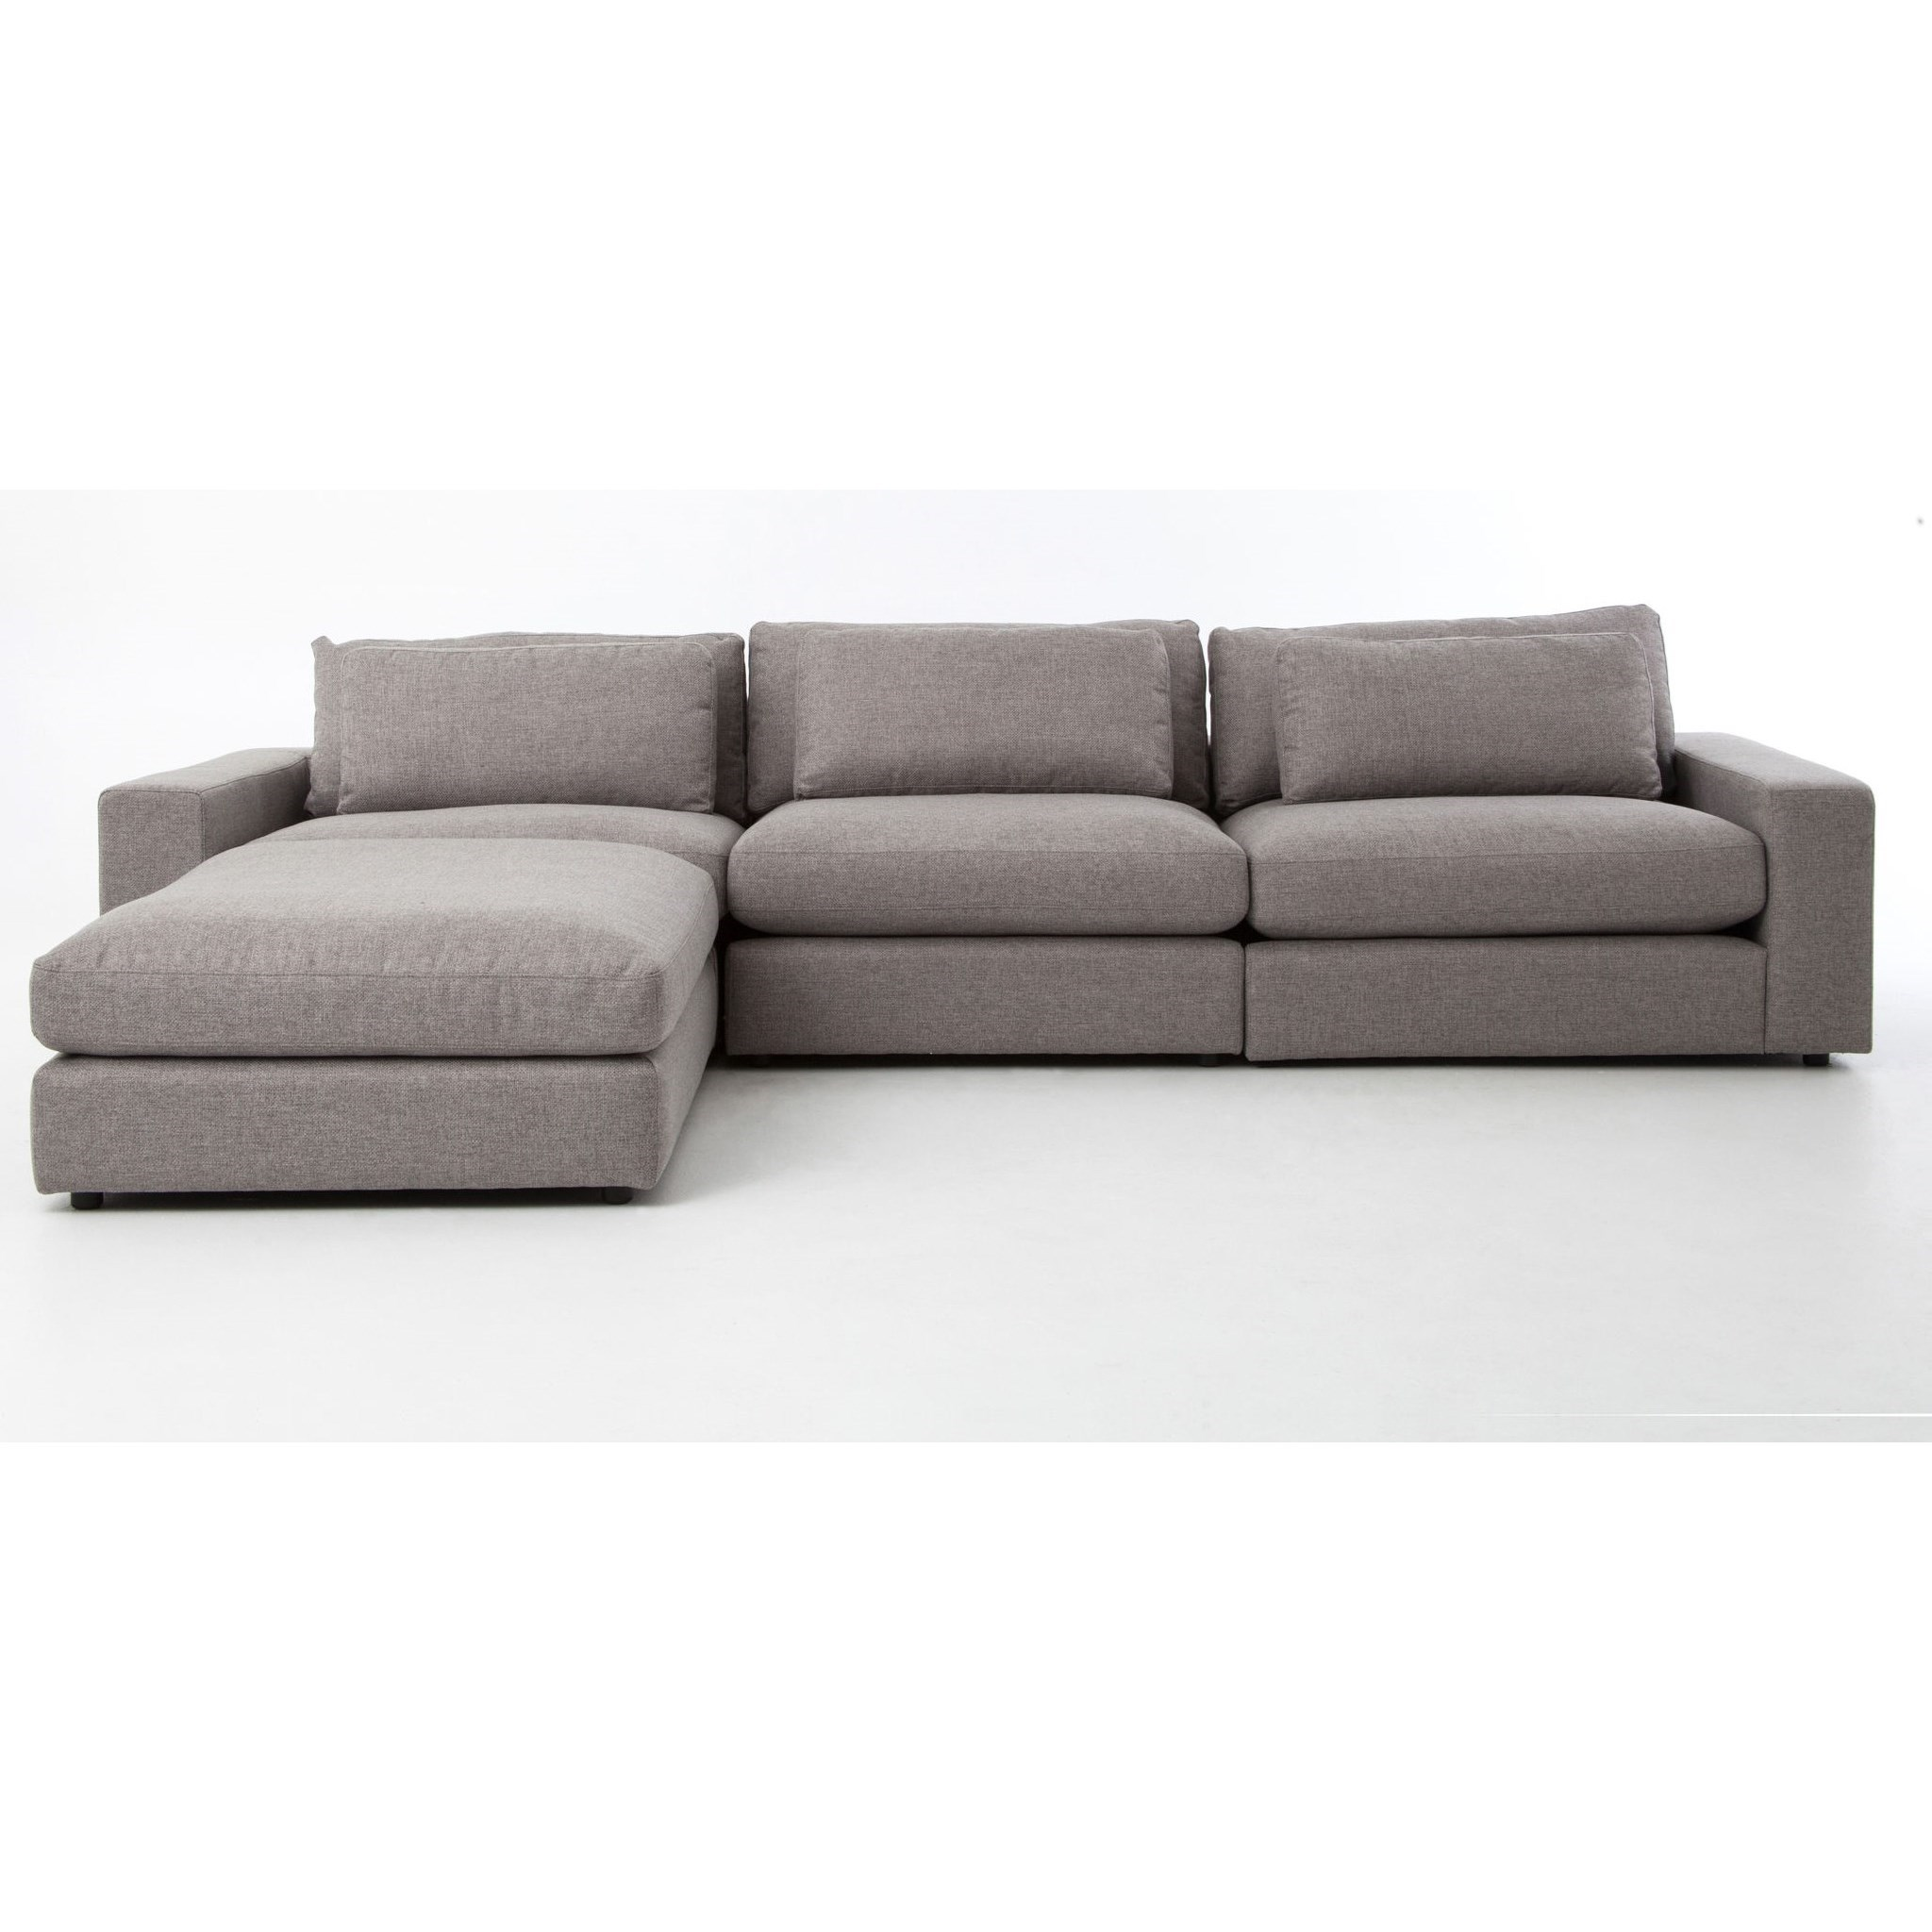 Four Hands Kensington Bloor Sofa with Ottoman - Item Number: CKEN-D2-360